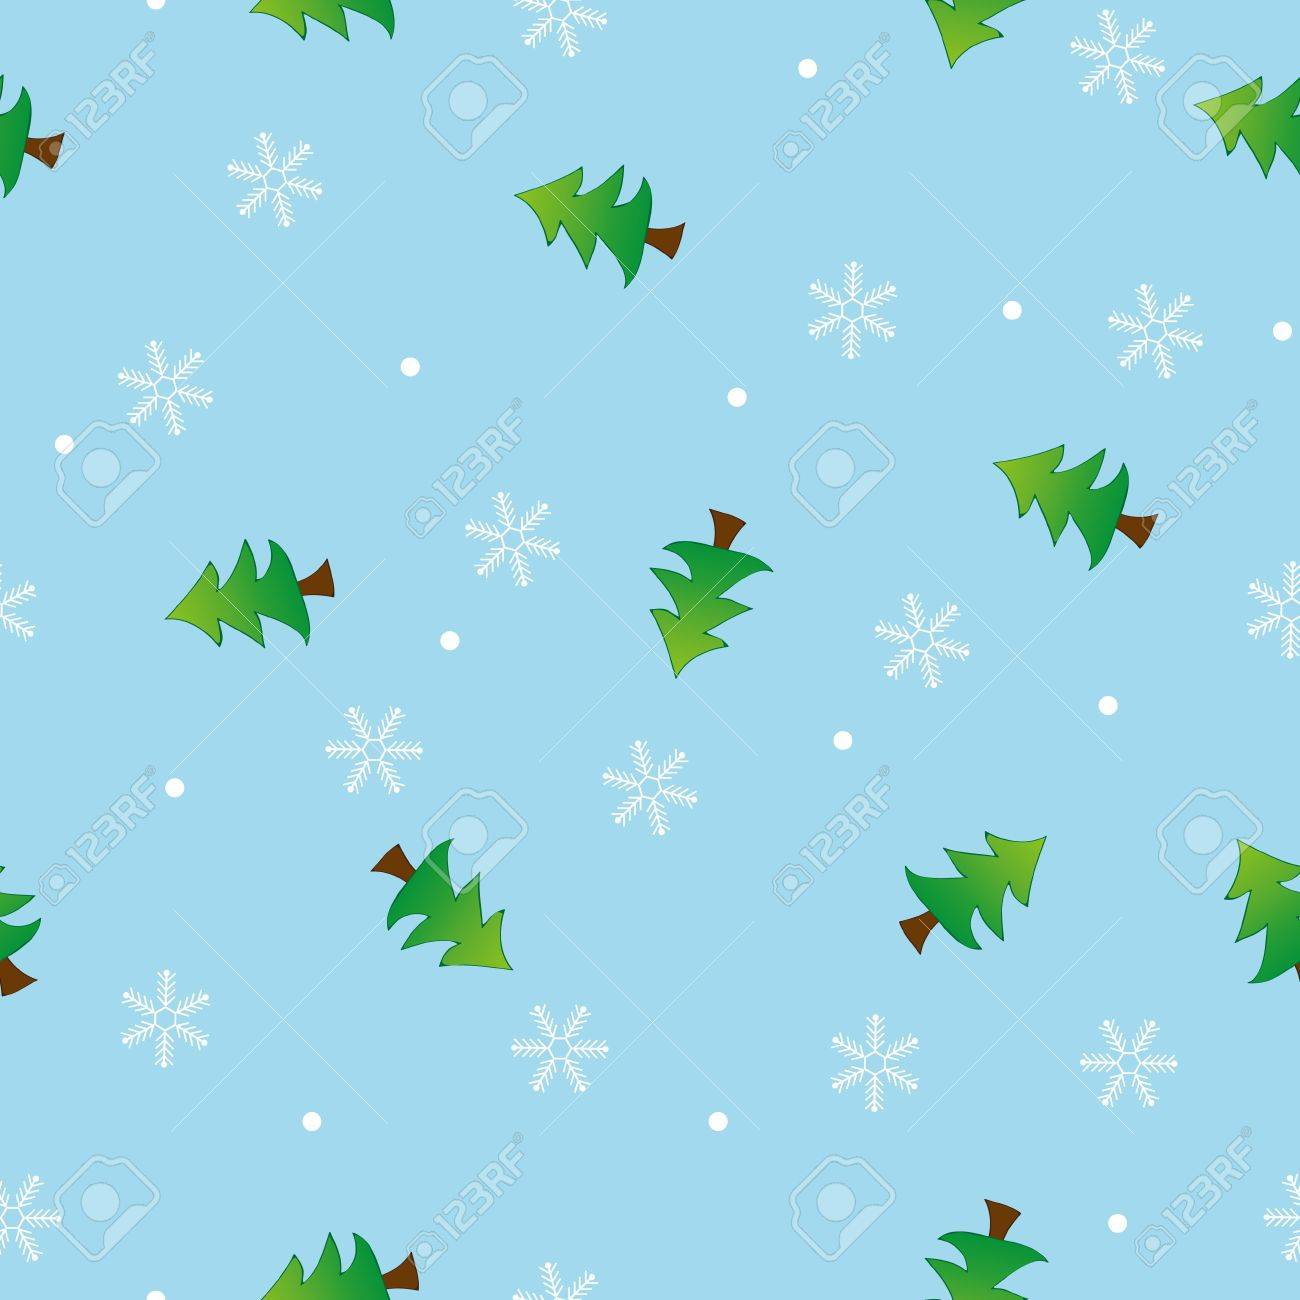 Seamless snowflake and tree pattern blue background,vector Stock Vector - 15602273